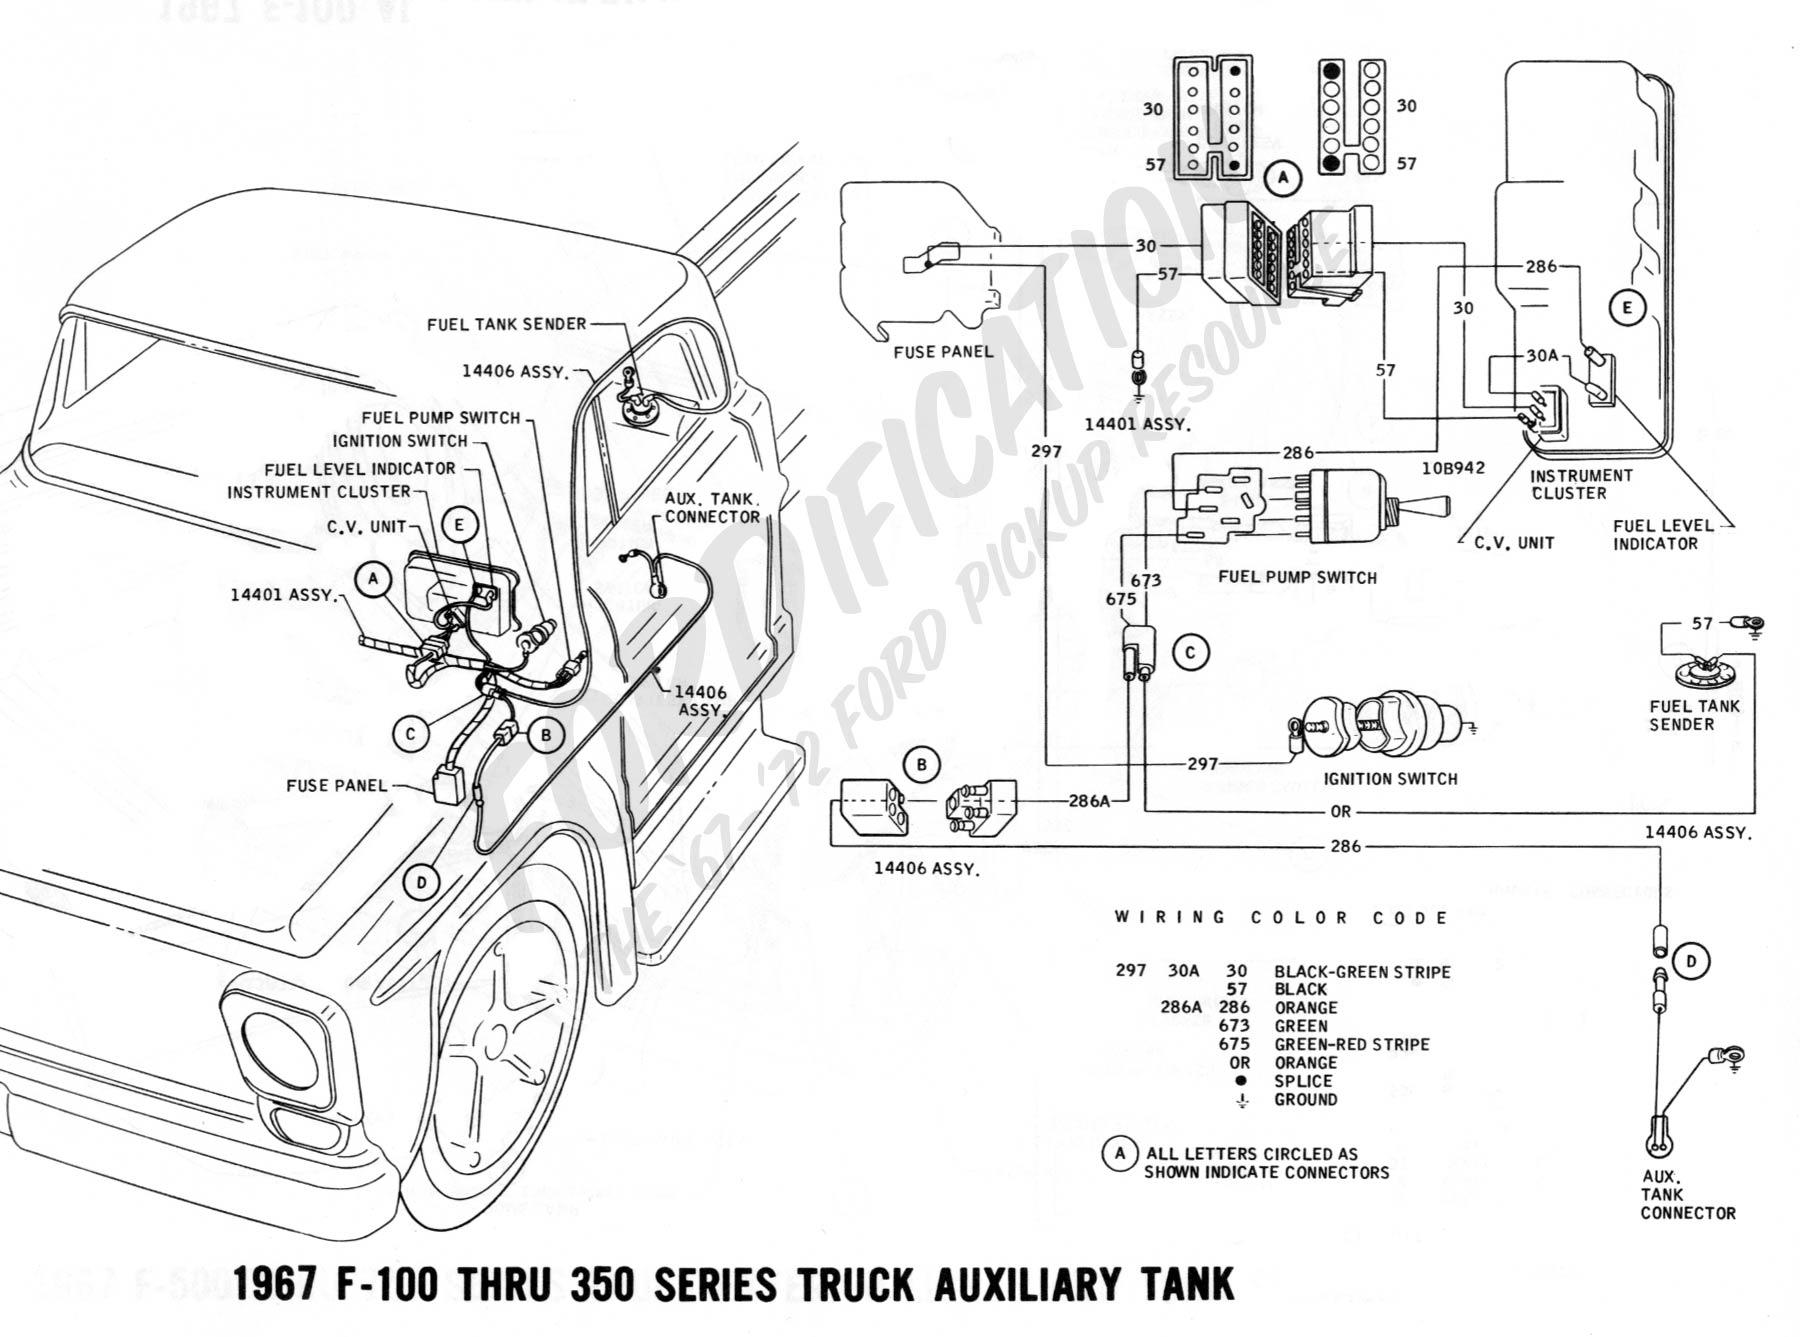 1973 Ford F 250 Fuel Gauge Wiring Diagram - Wiring Diagram •